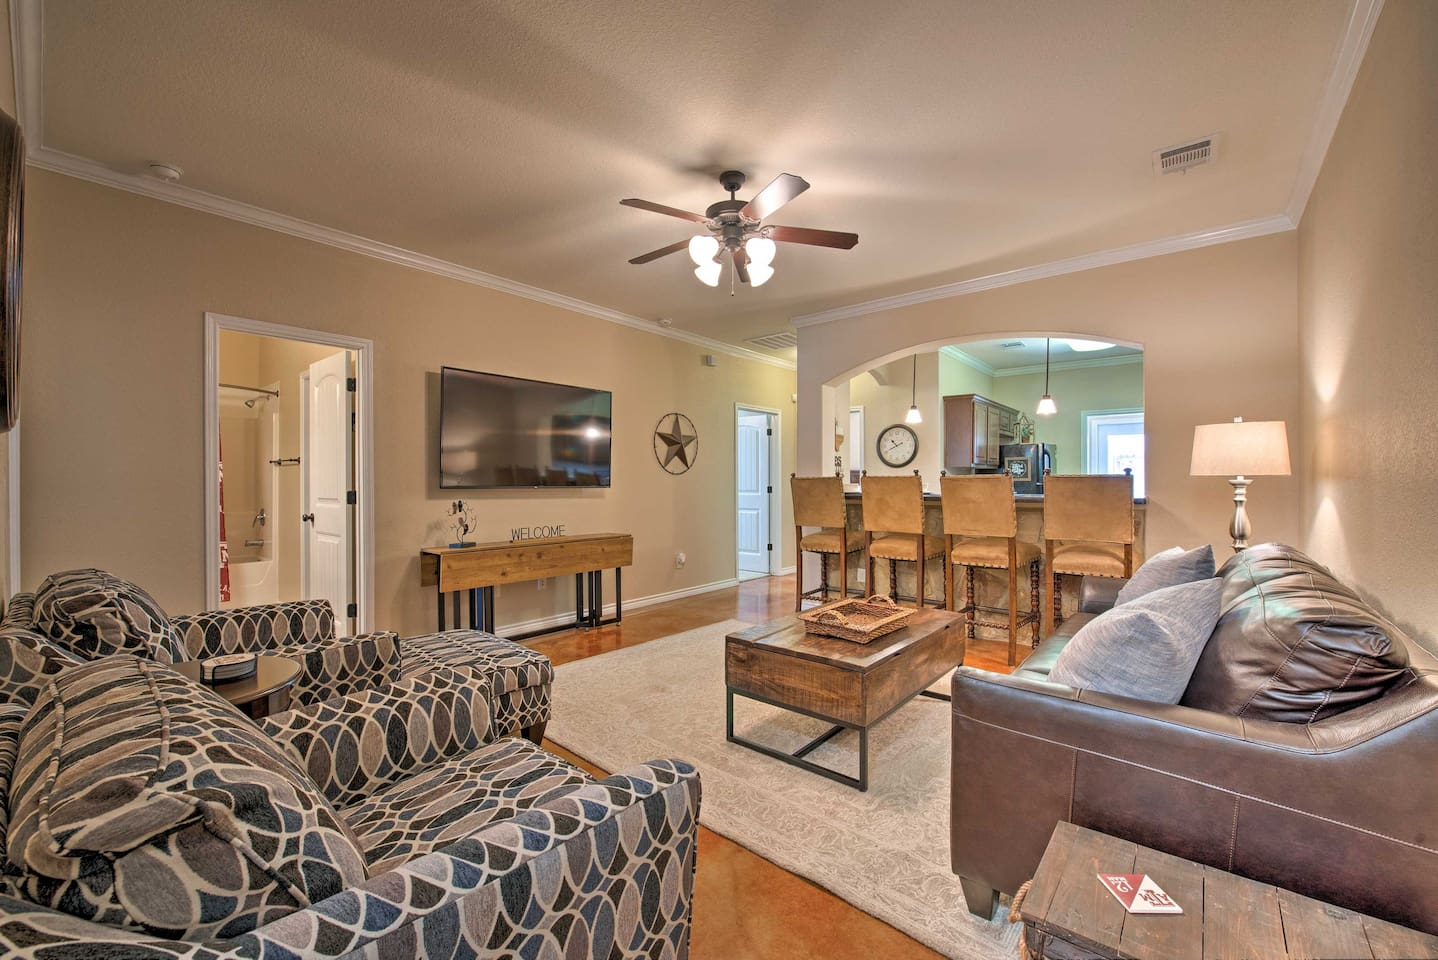 The interior is complete with 1,290 square feet of well-appointed living space.